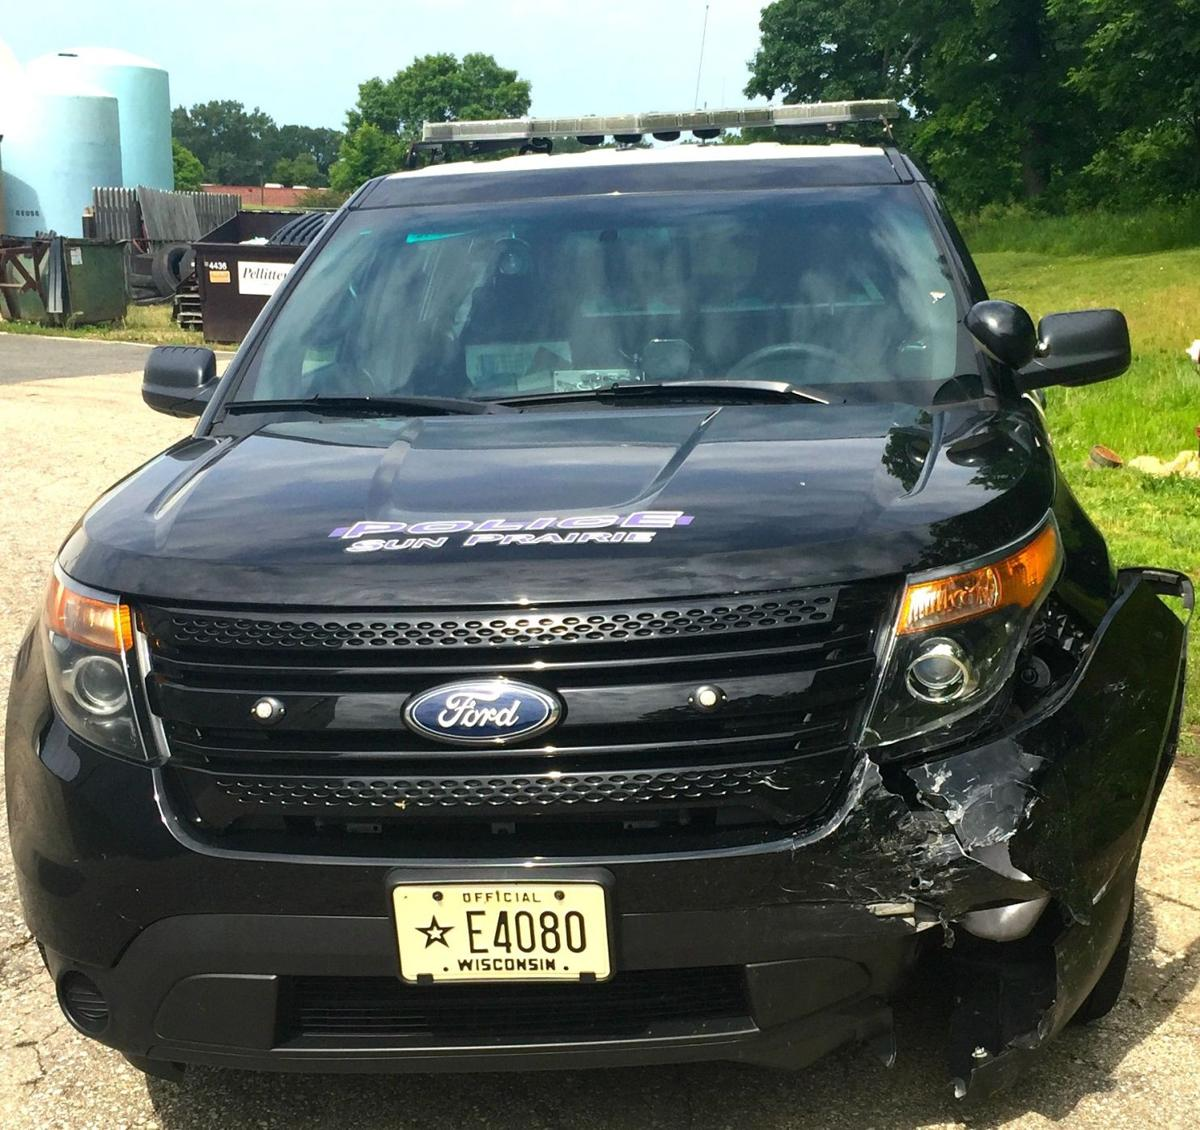 Update Sun Prairie Man Cited For Owi After Colliding With